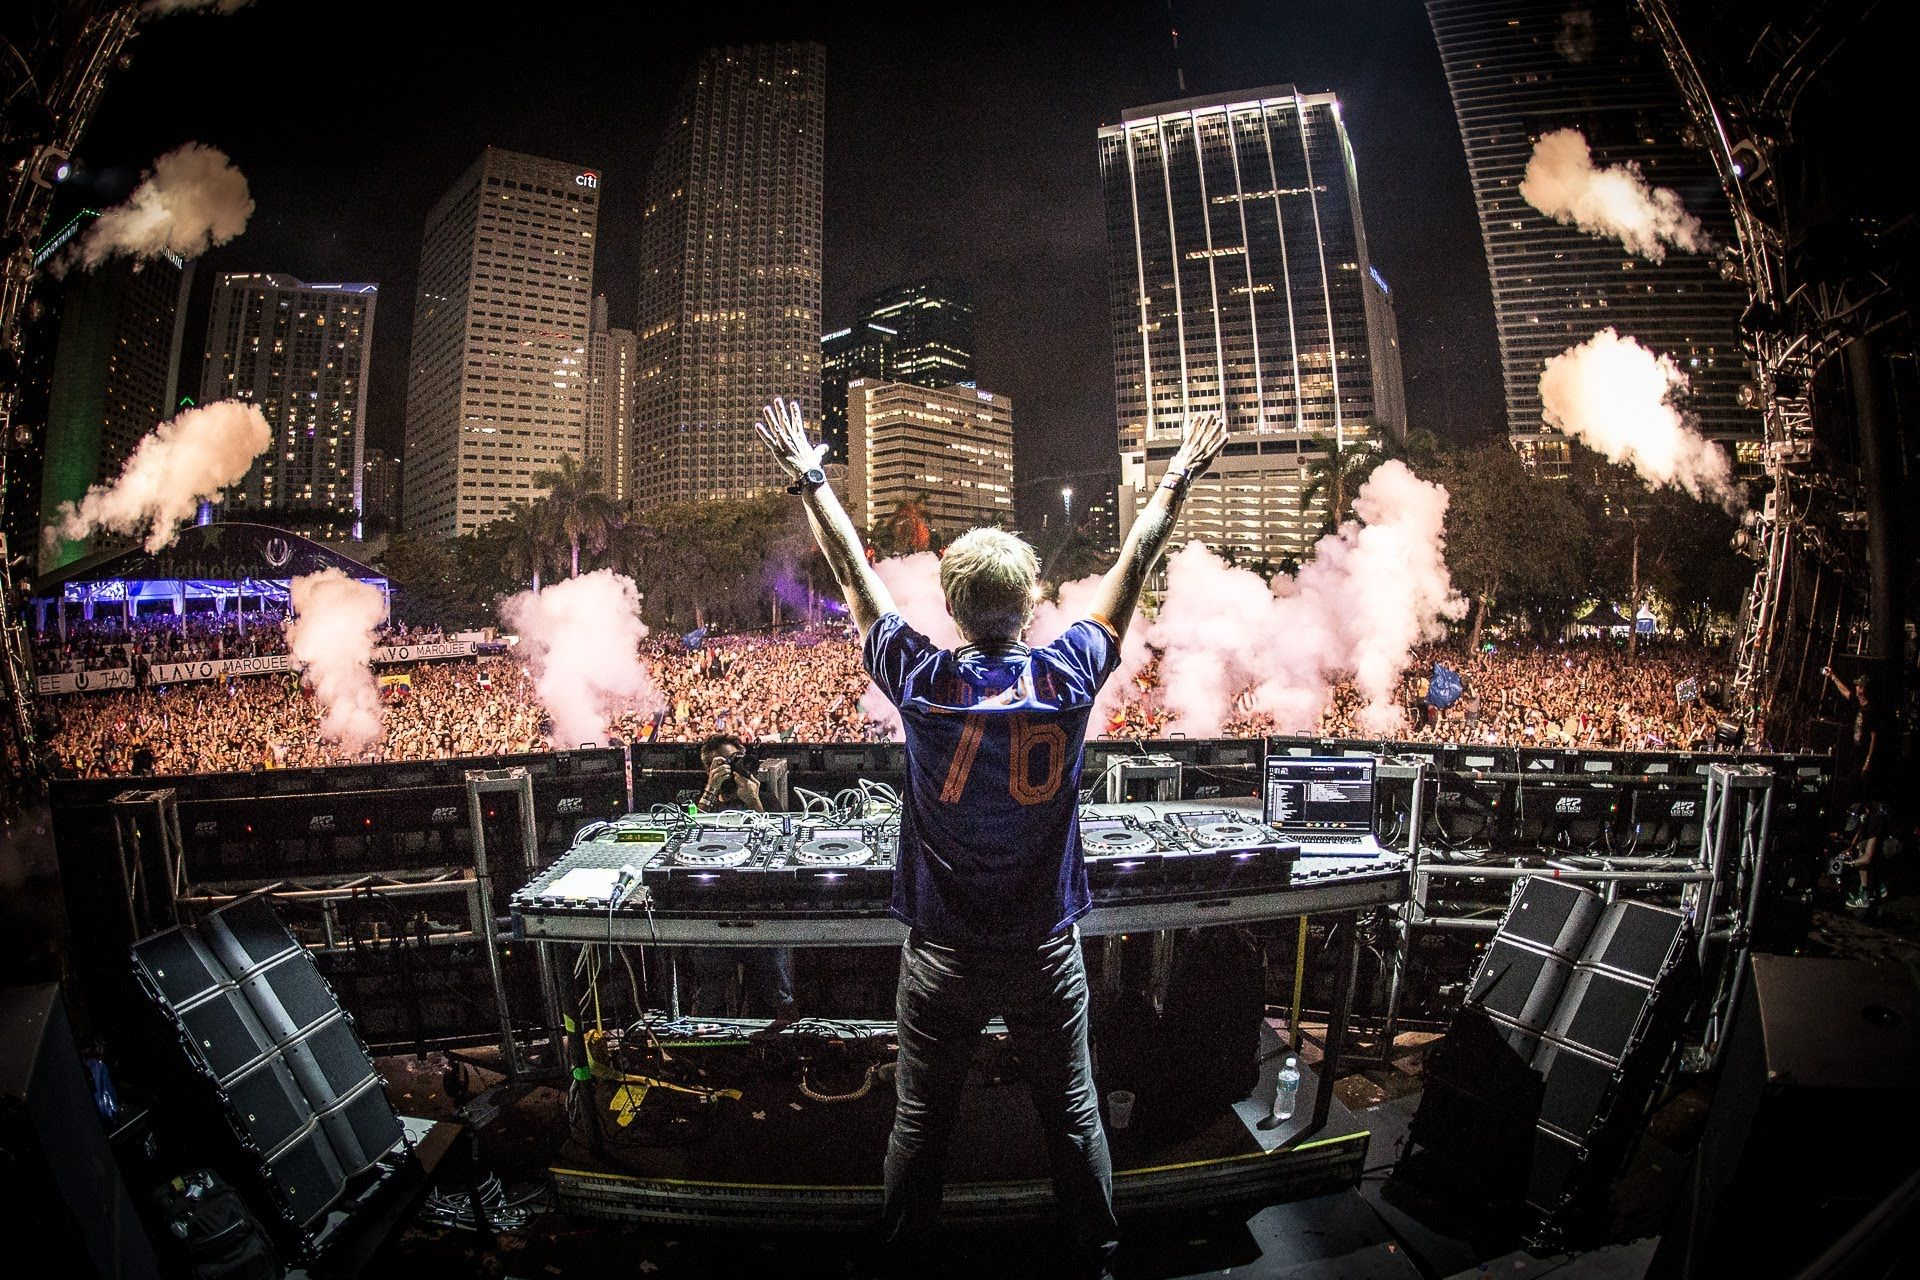 Armin Van Buuren Live At Ultra Music Festival 2014 With Images